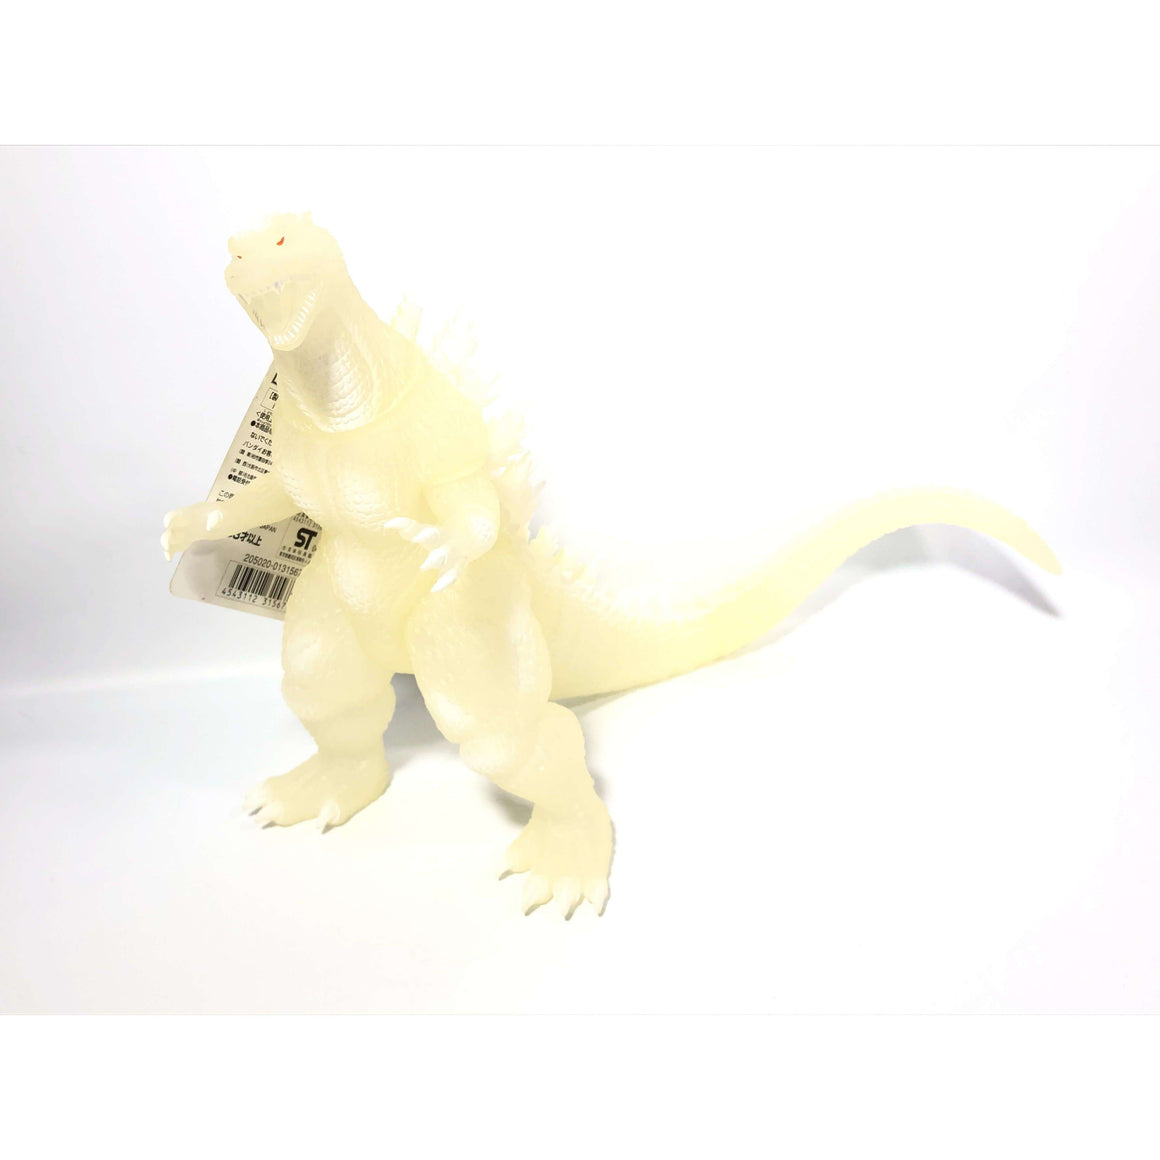 CSTOYS INTERNATIONAL:[LOOSE] Movie Monster Series Gozilla 2005 Special Edition (Ito-Yokado Exclusive Ver.)